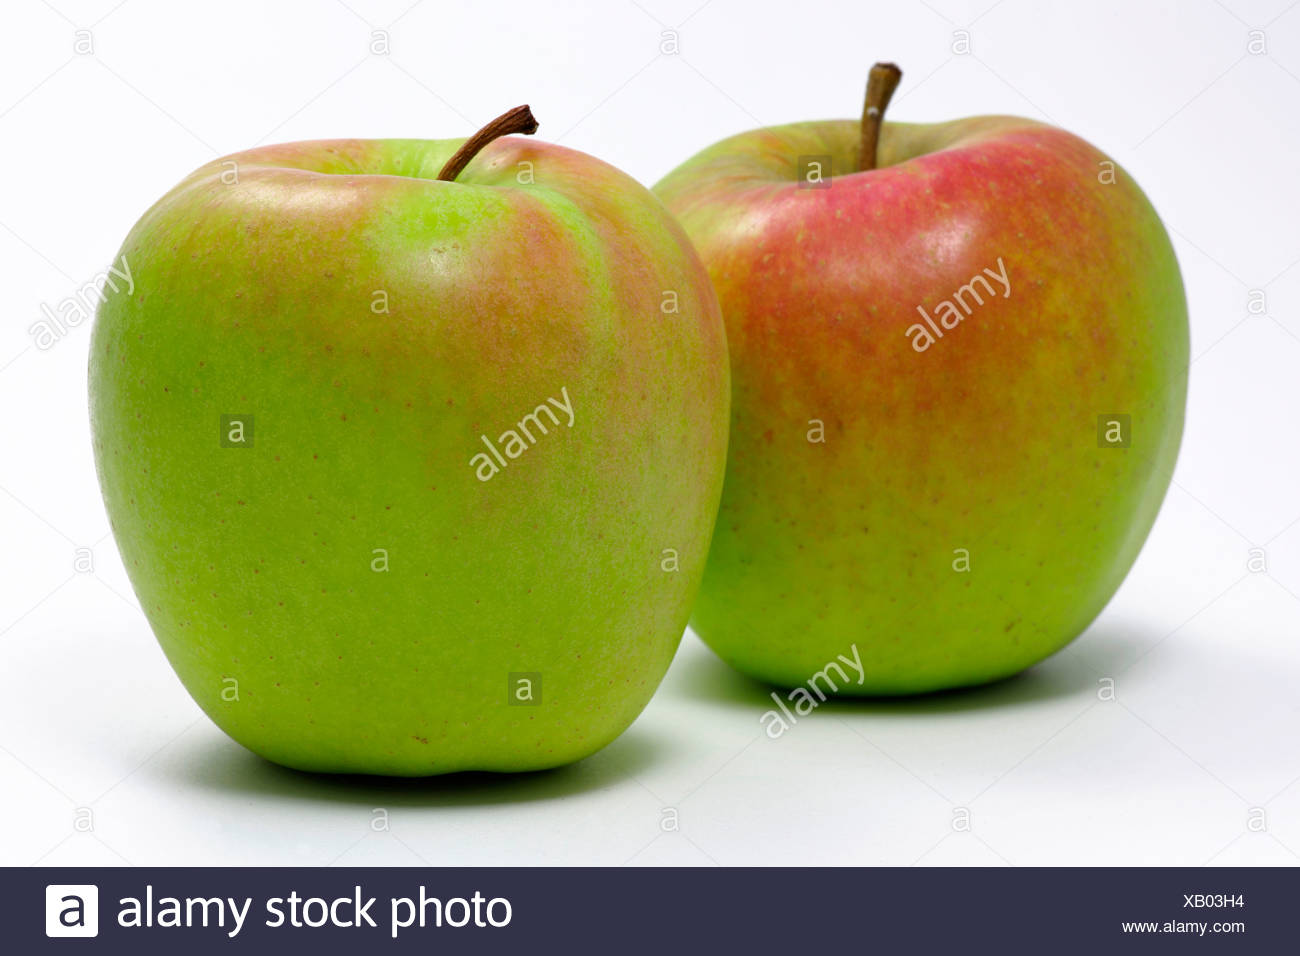 Golden Delicious apples - Stock Image